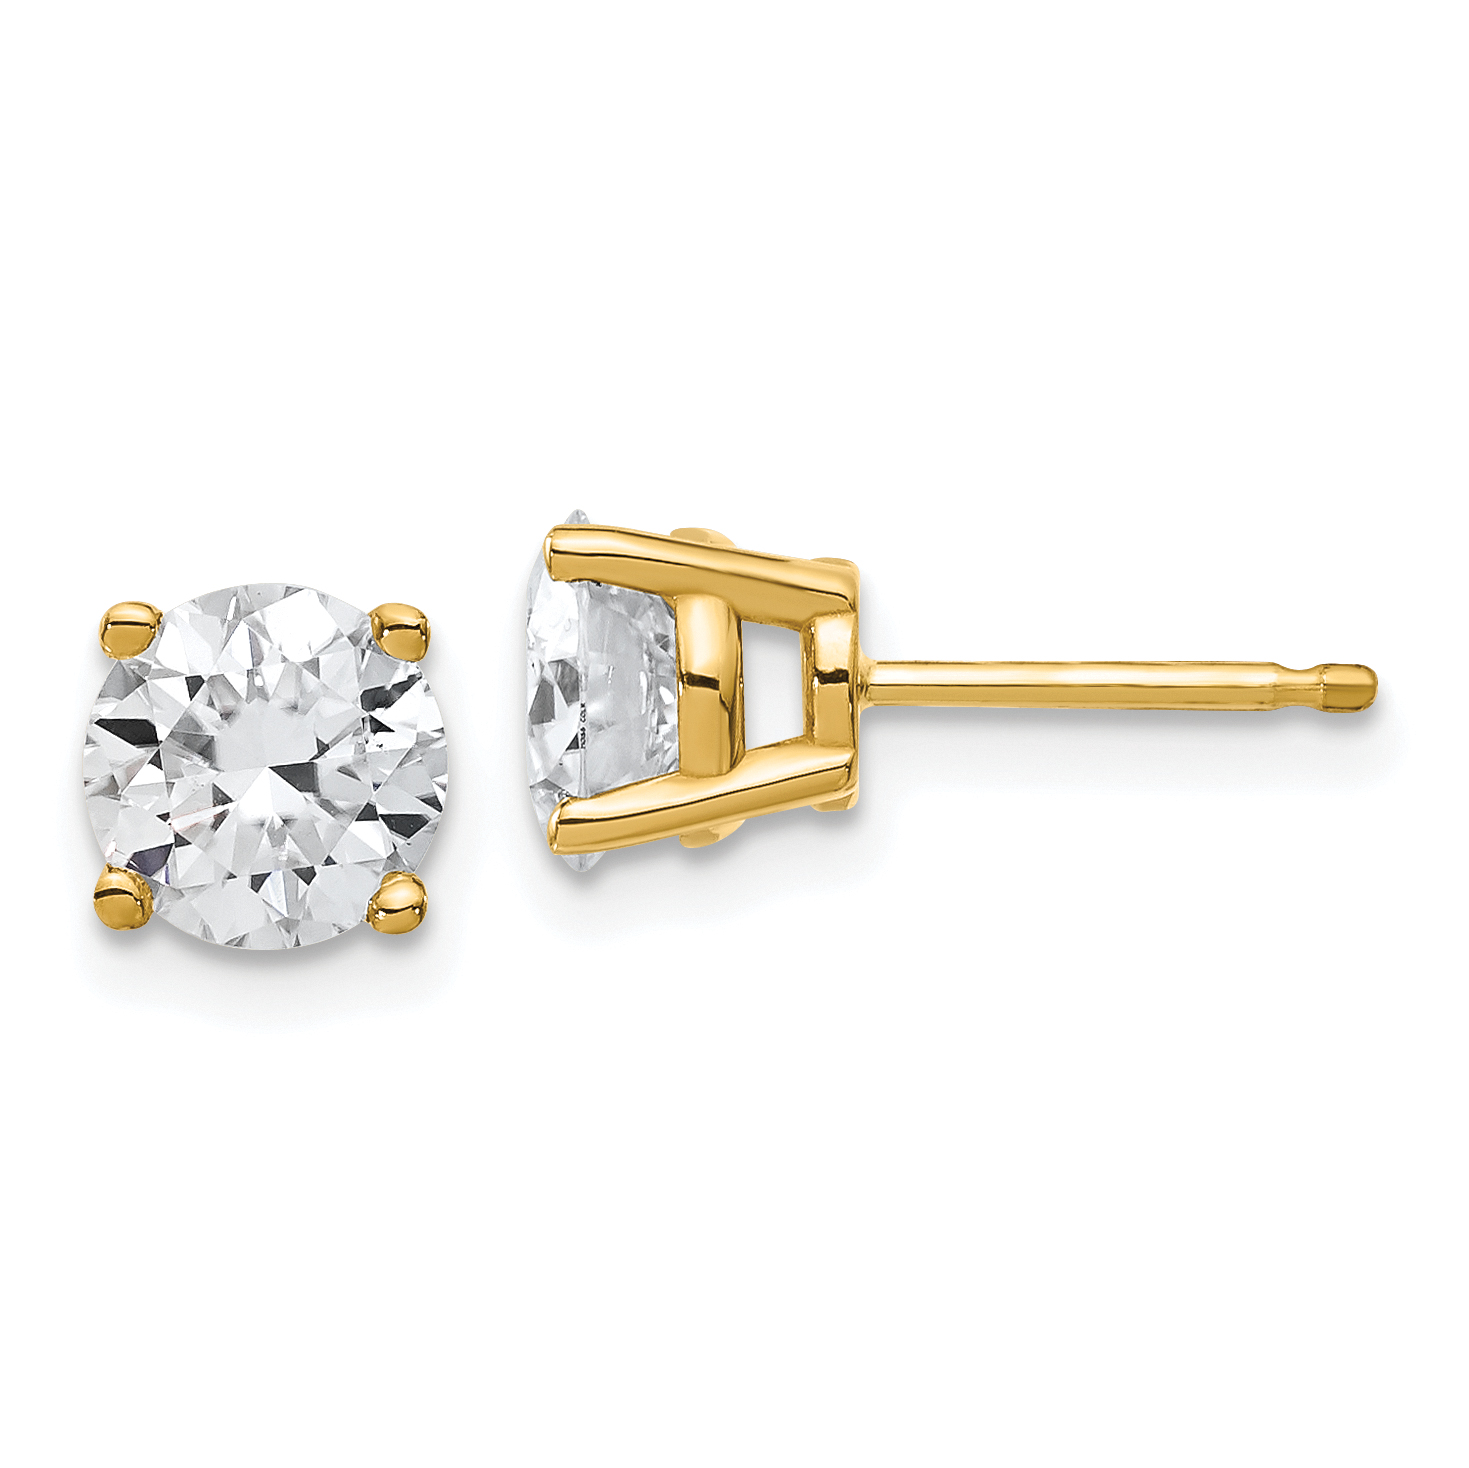 rose colvard image forever dwt one round earrings stud moissanite charles gold